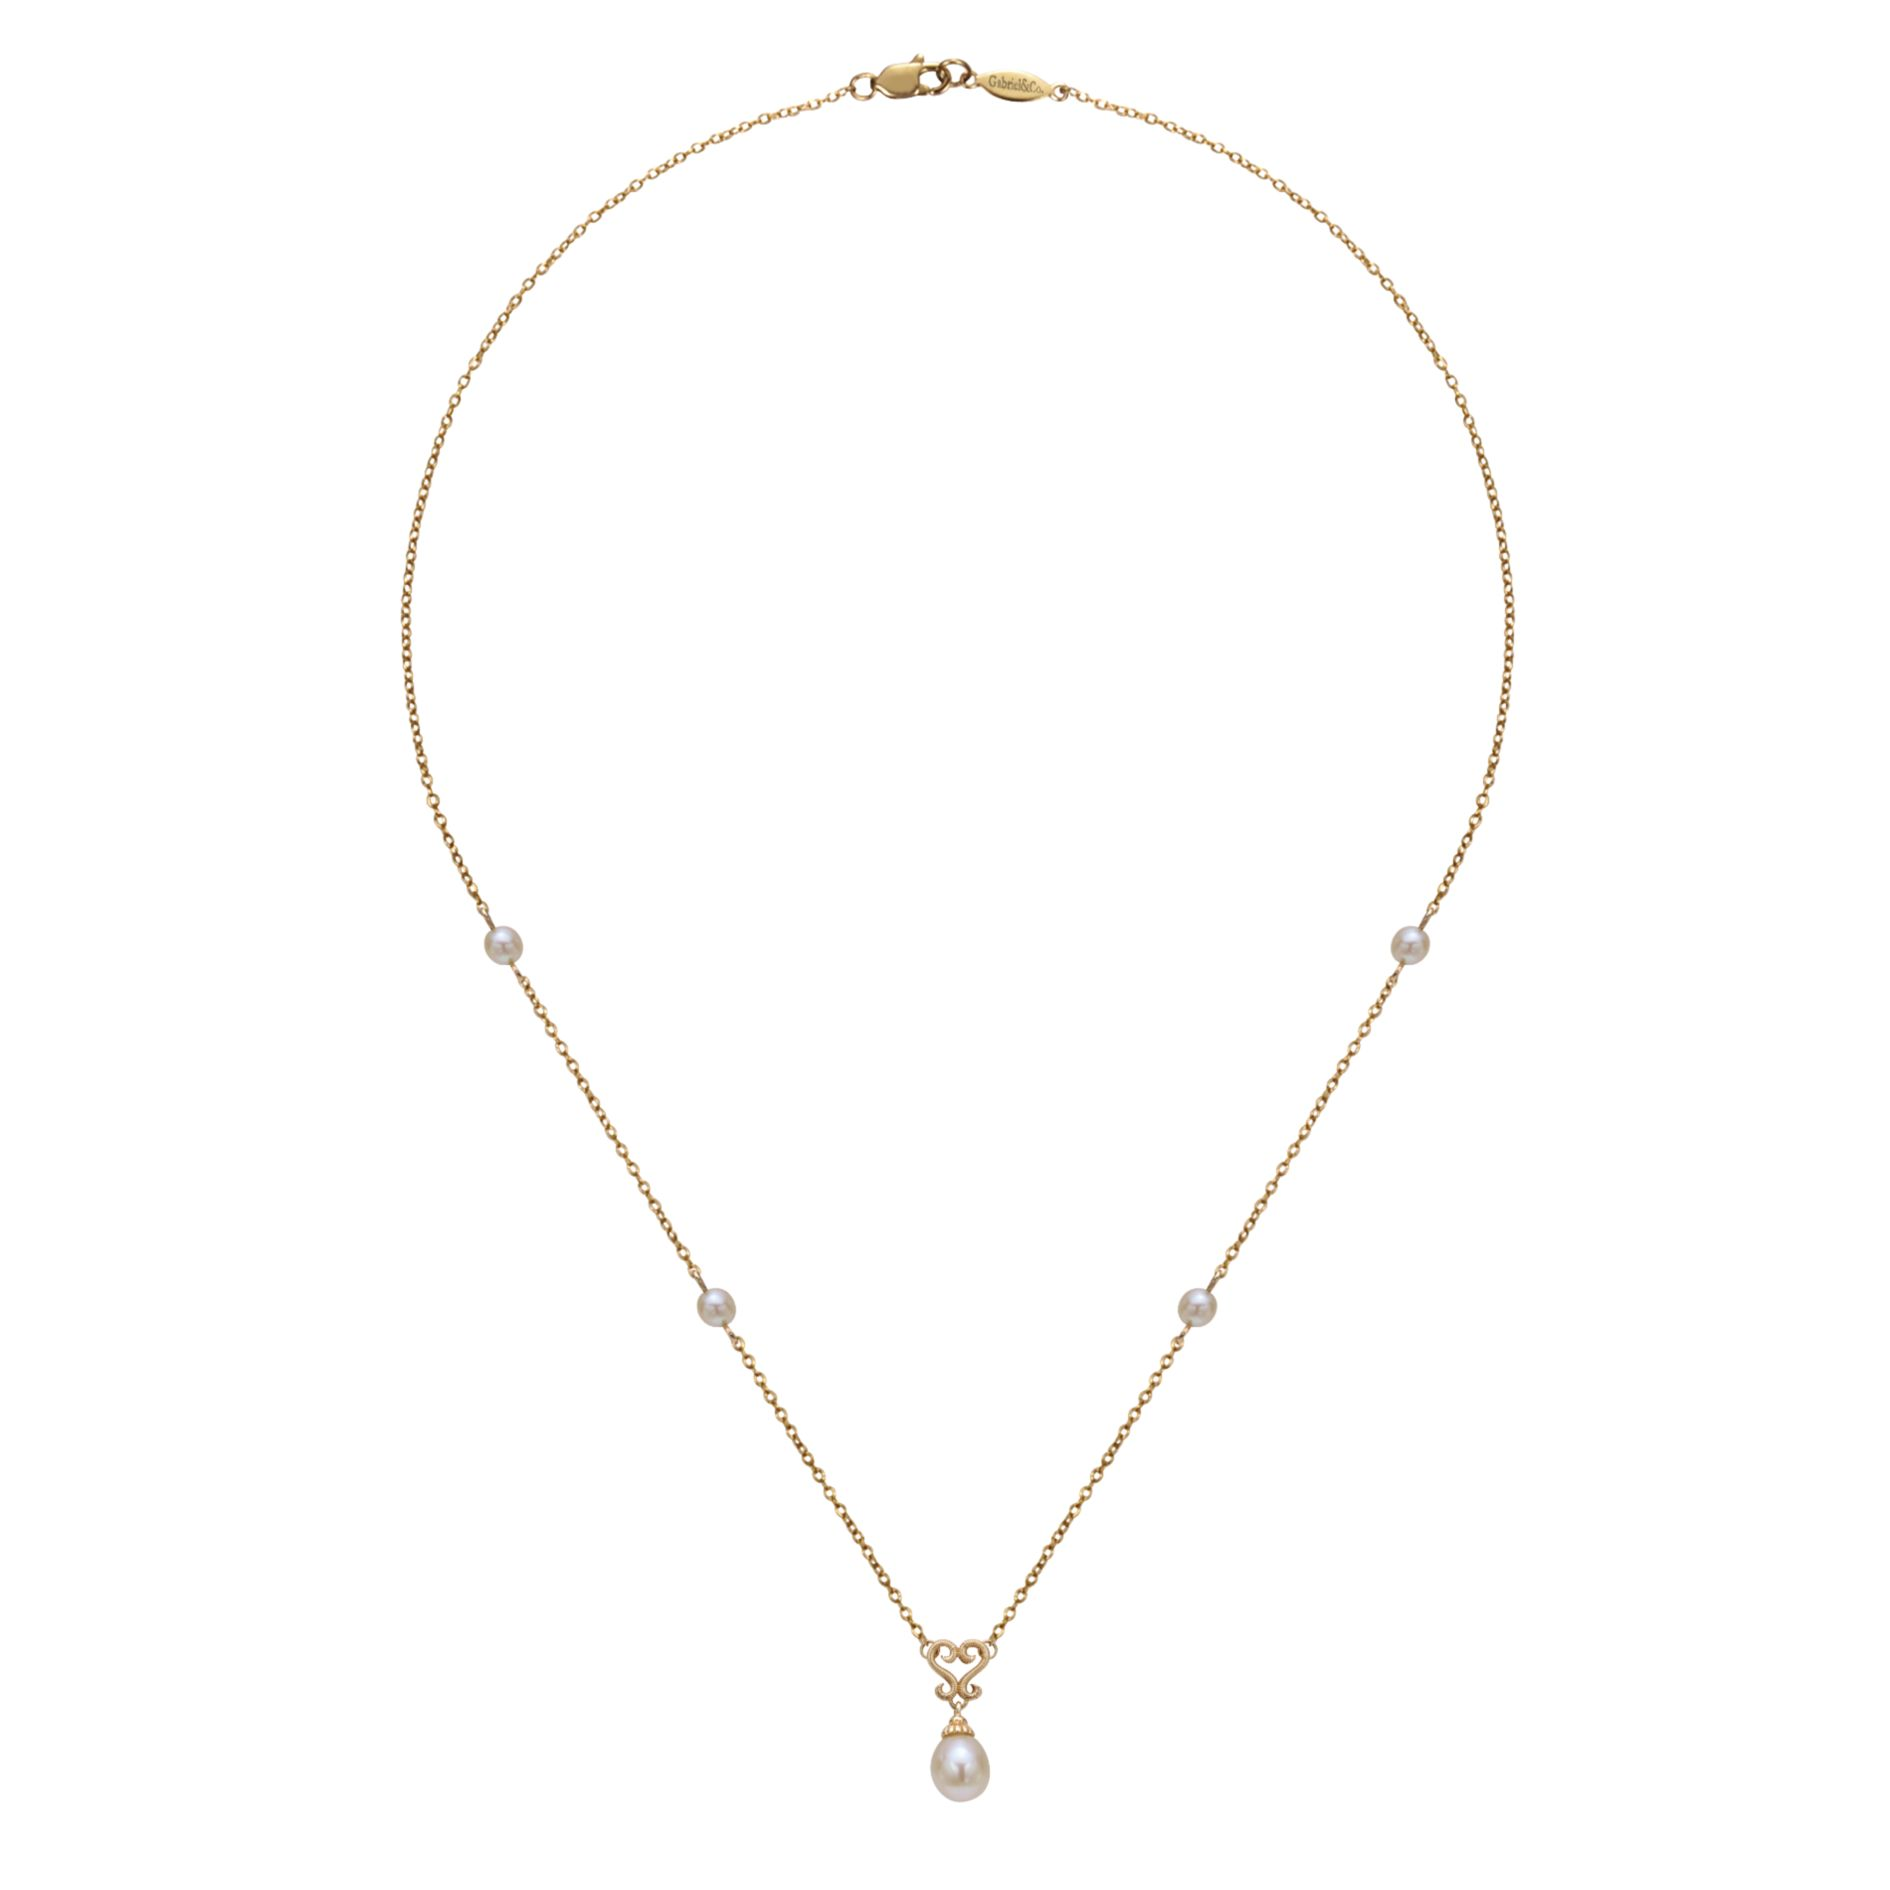 Necklaces - ELLOW GOLD FASHION CULTURED PEARL NECKLACE - image #2